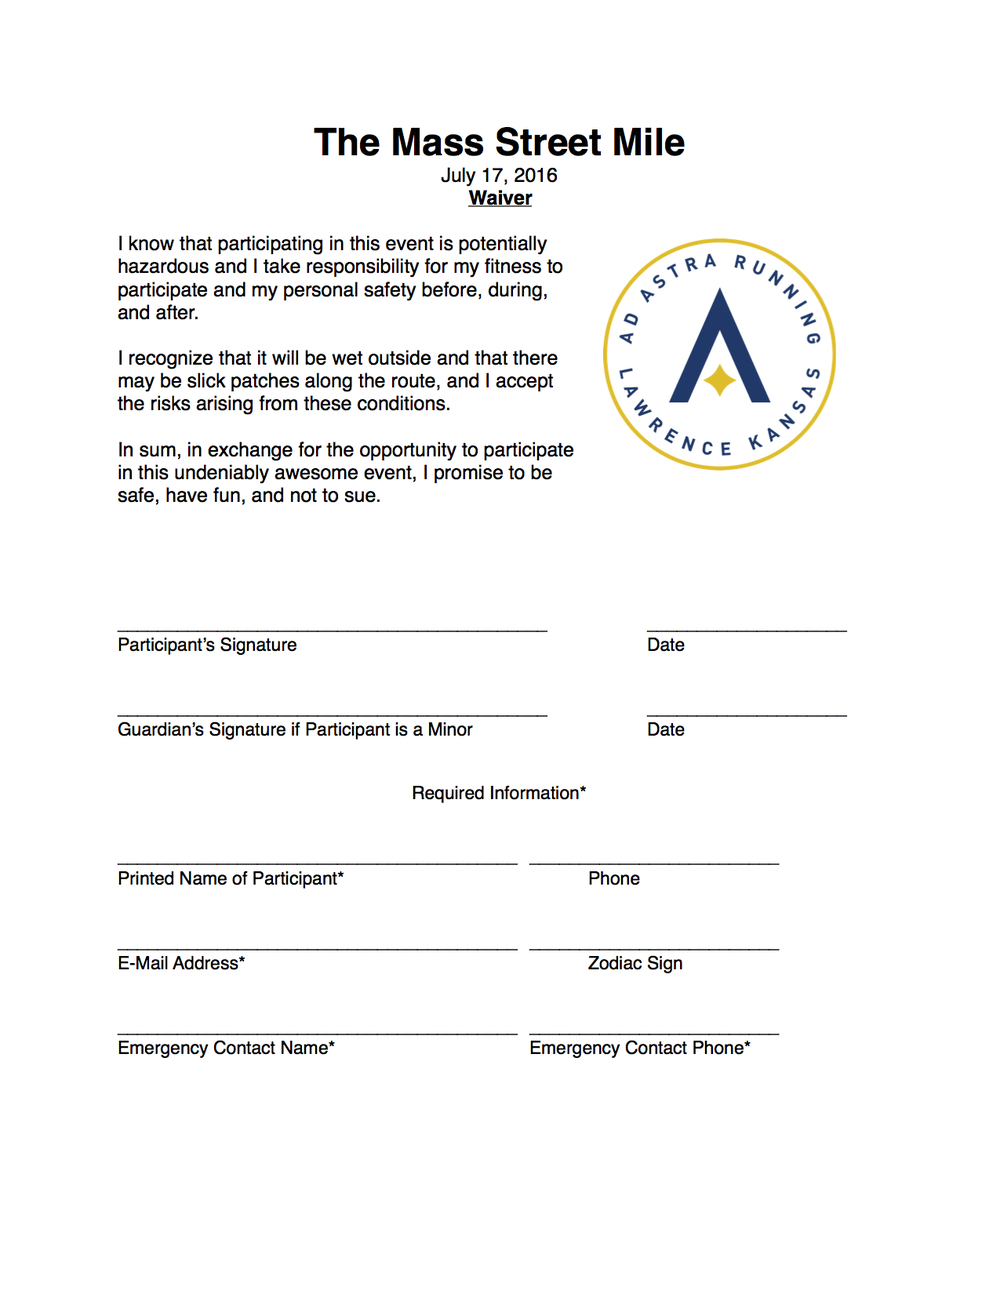 Download and print out the waiver and bring it with you to the race to save your time.